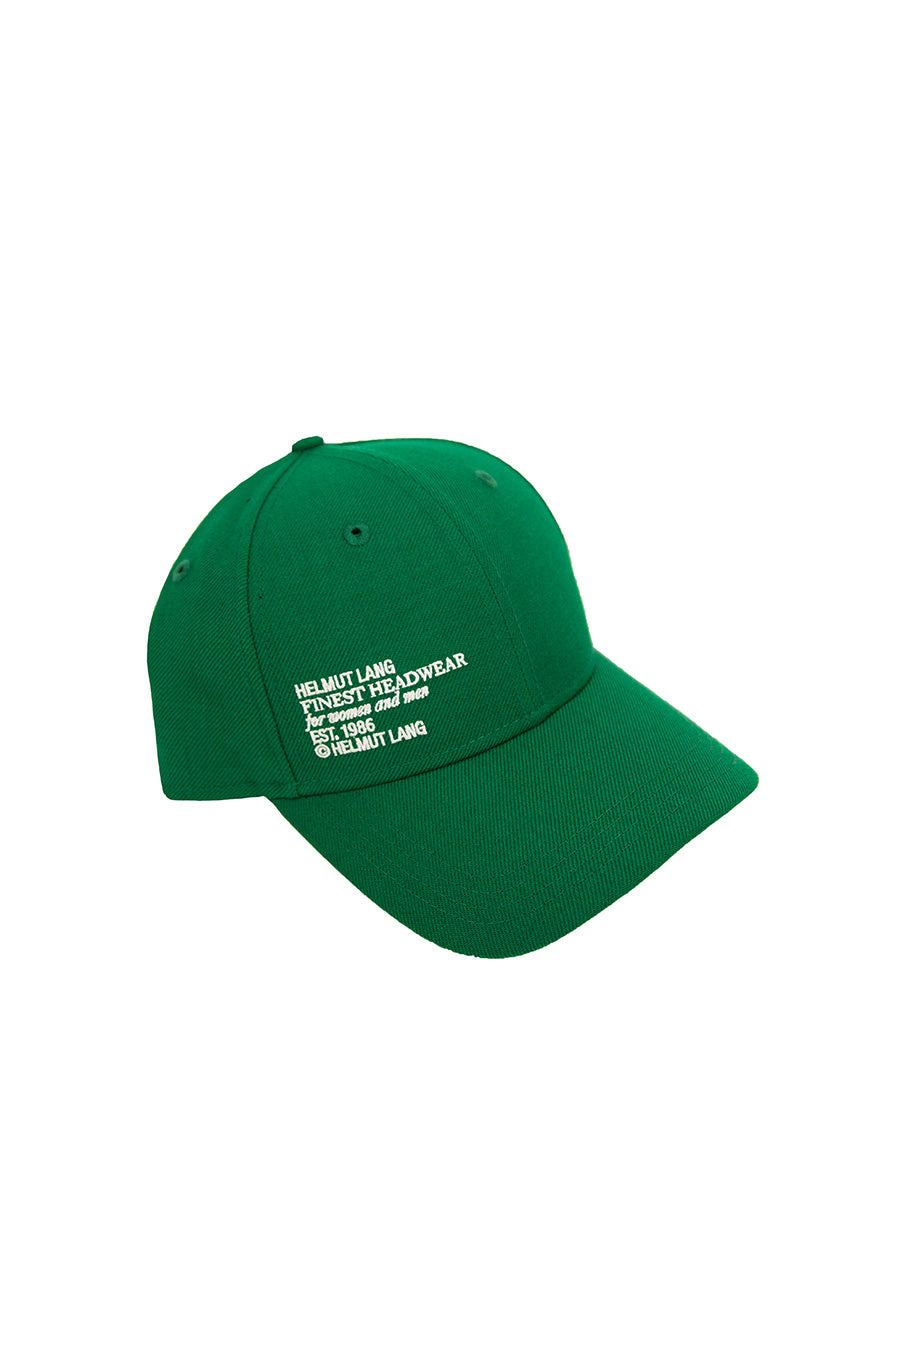 Helmut Lang - Green Helmut Lang x New Era 9Forty Hat | 1032 SPACE